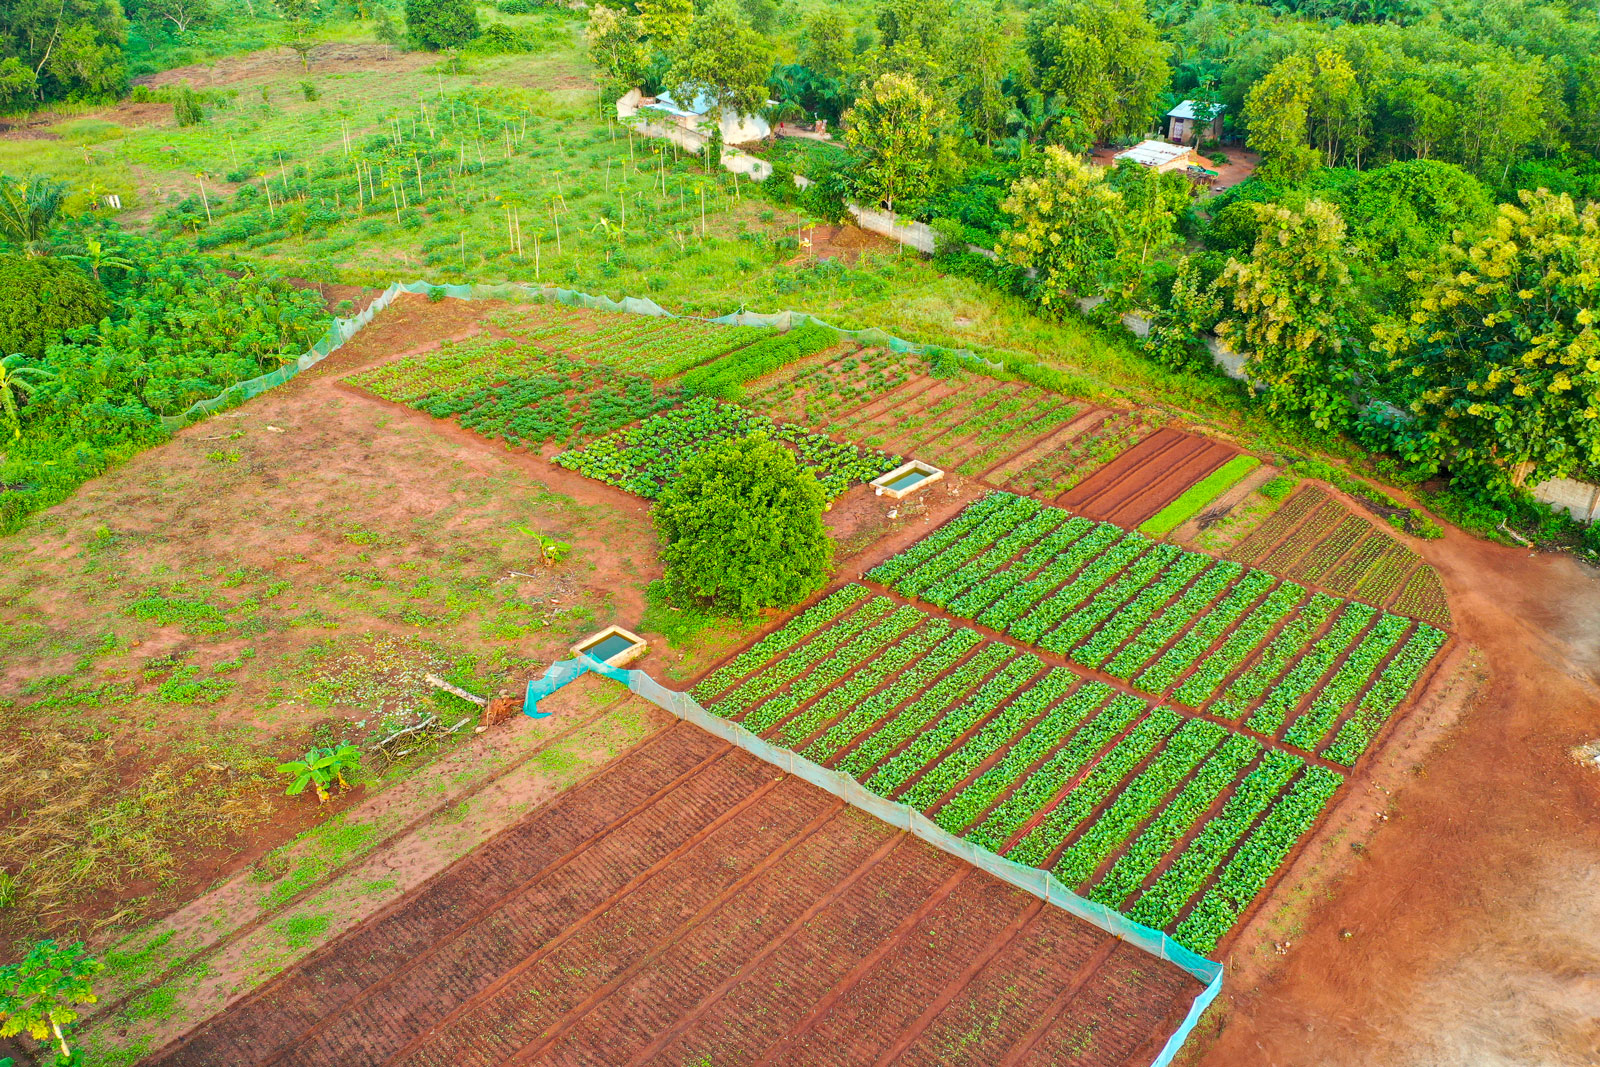 Crops shown from drone image.